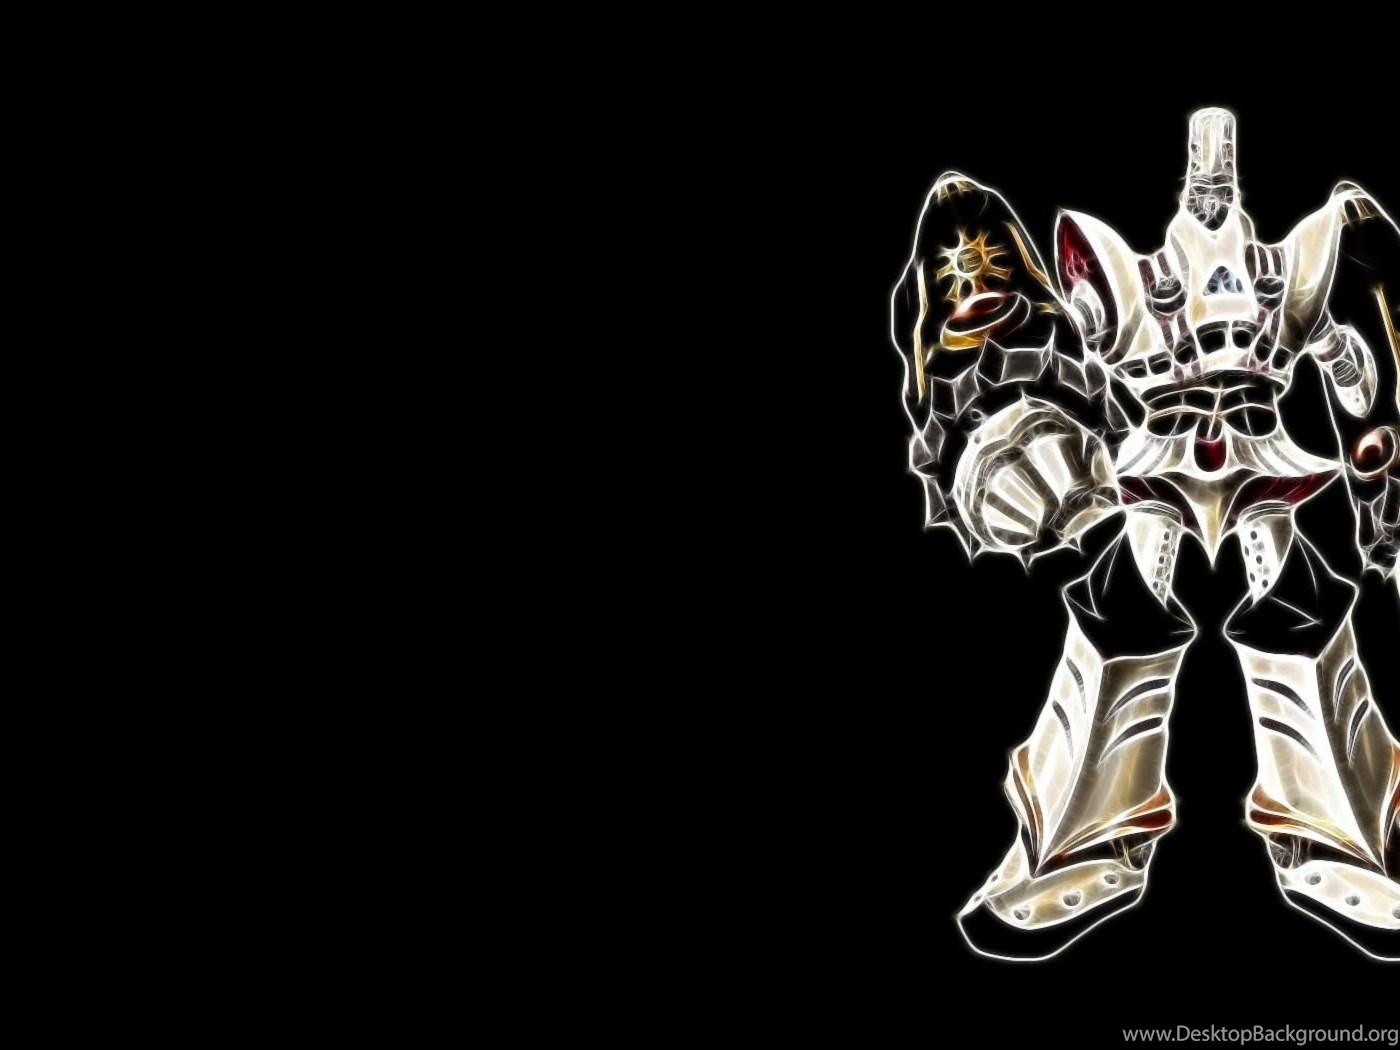 The Big O Anime Hd Wallpaper 0003 Jpg Desktop Background